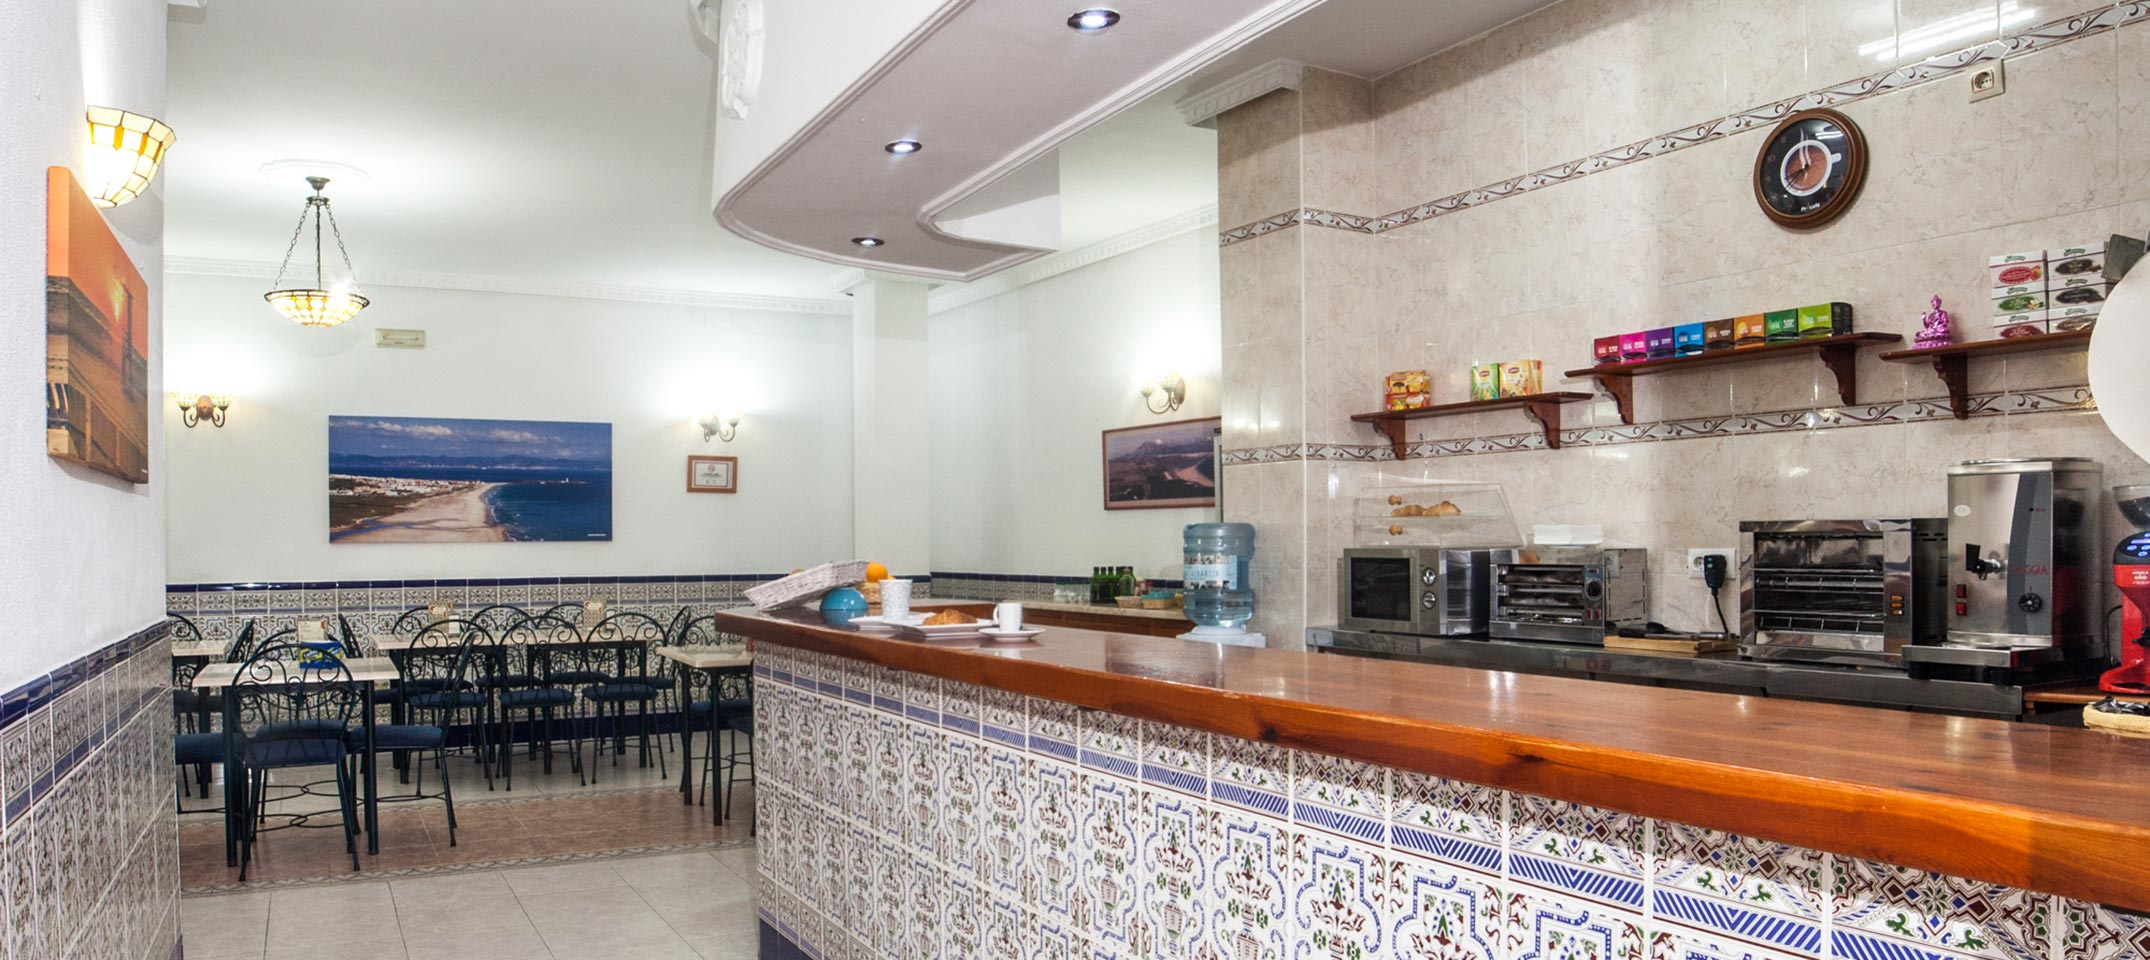 Hostel in Tarifa